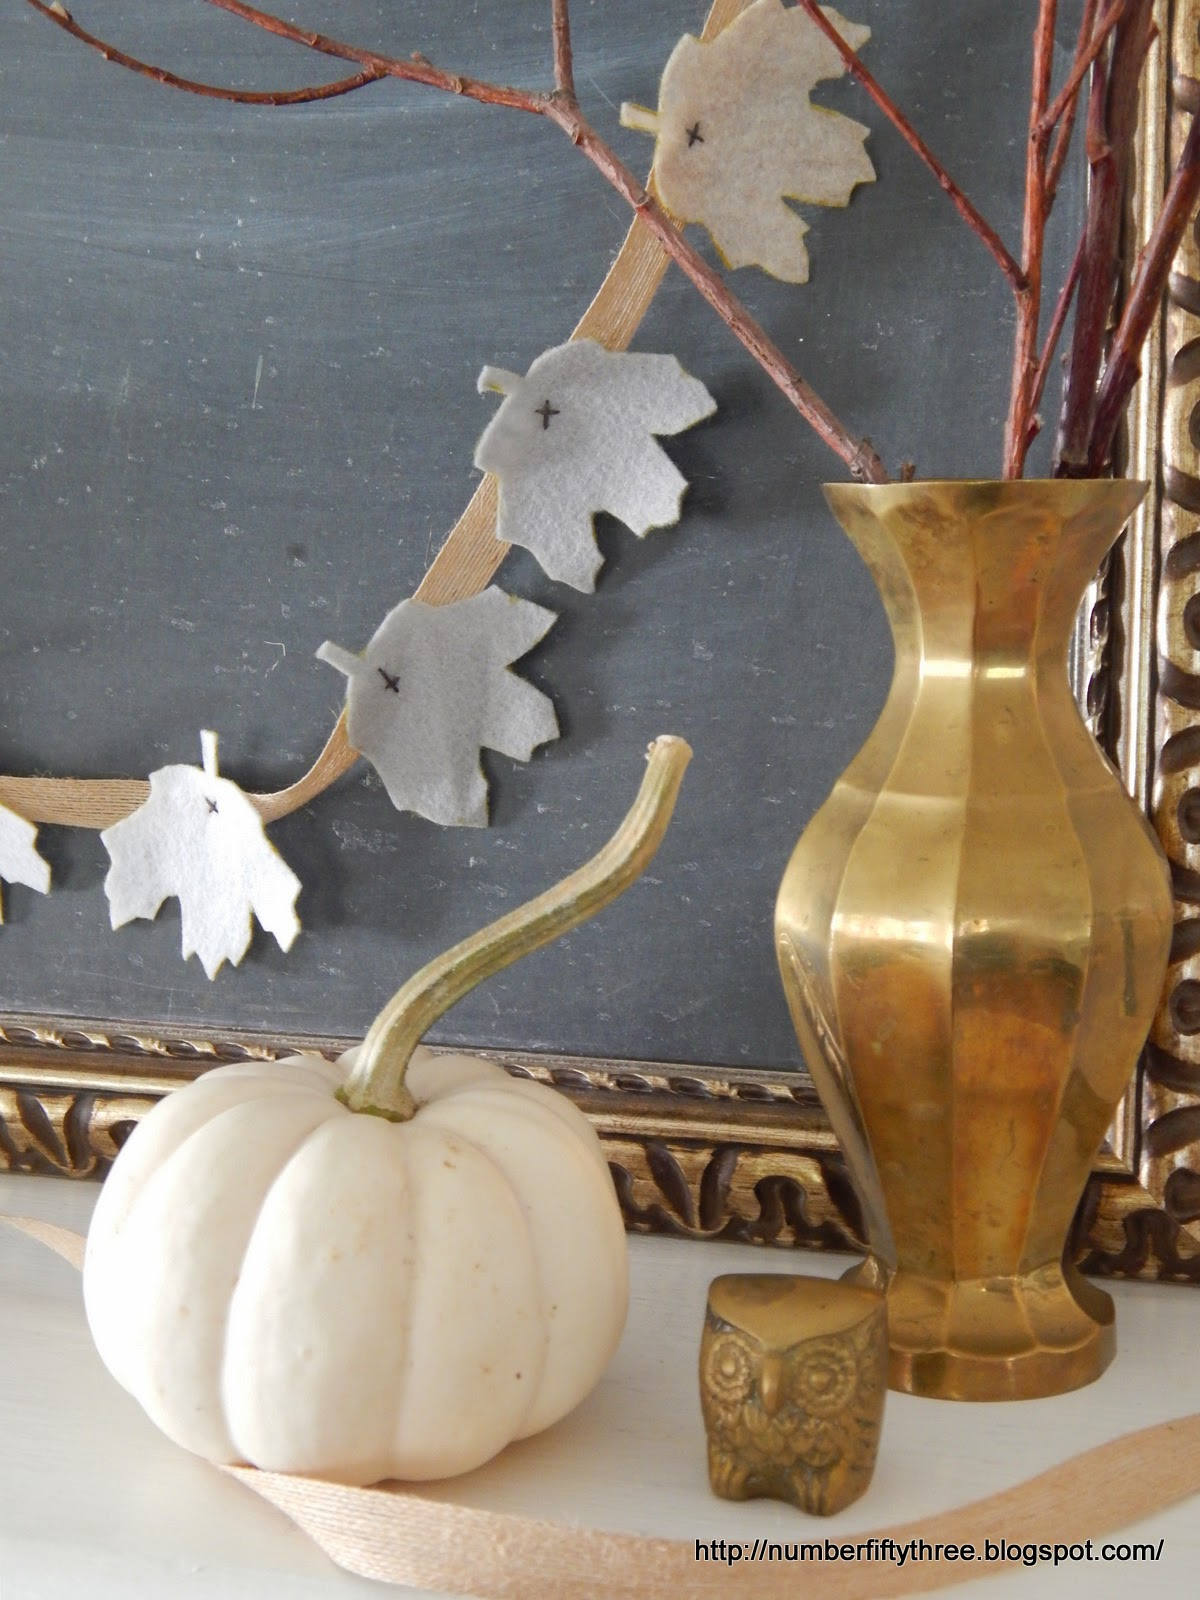 The garland makes a cute  addition to fall decor